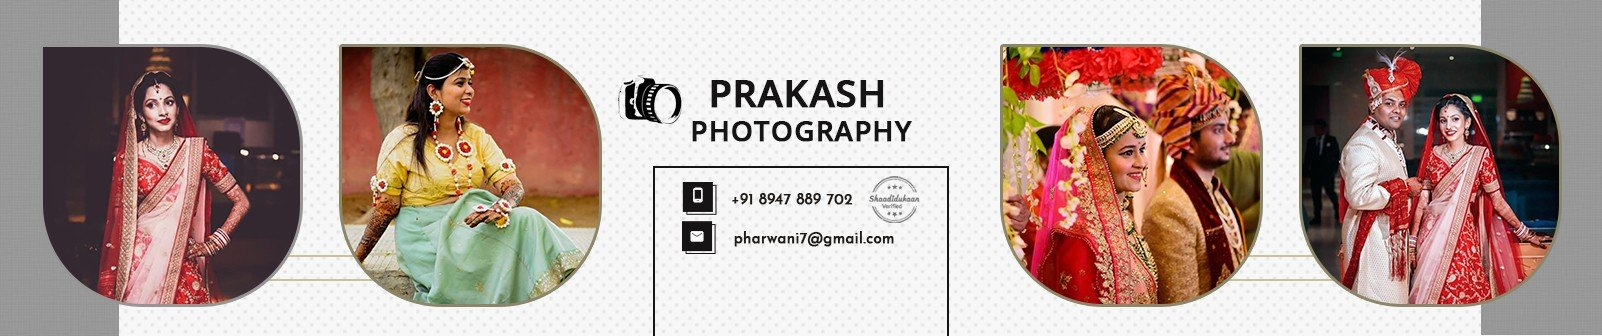 prakash-photography